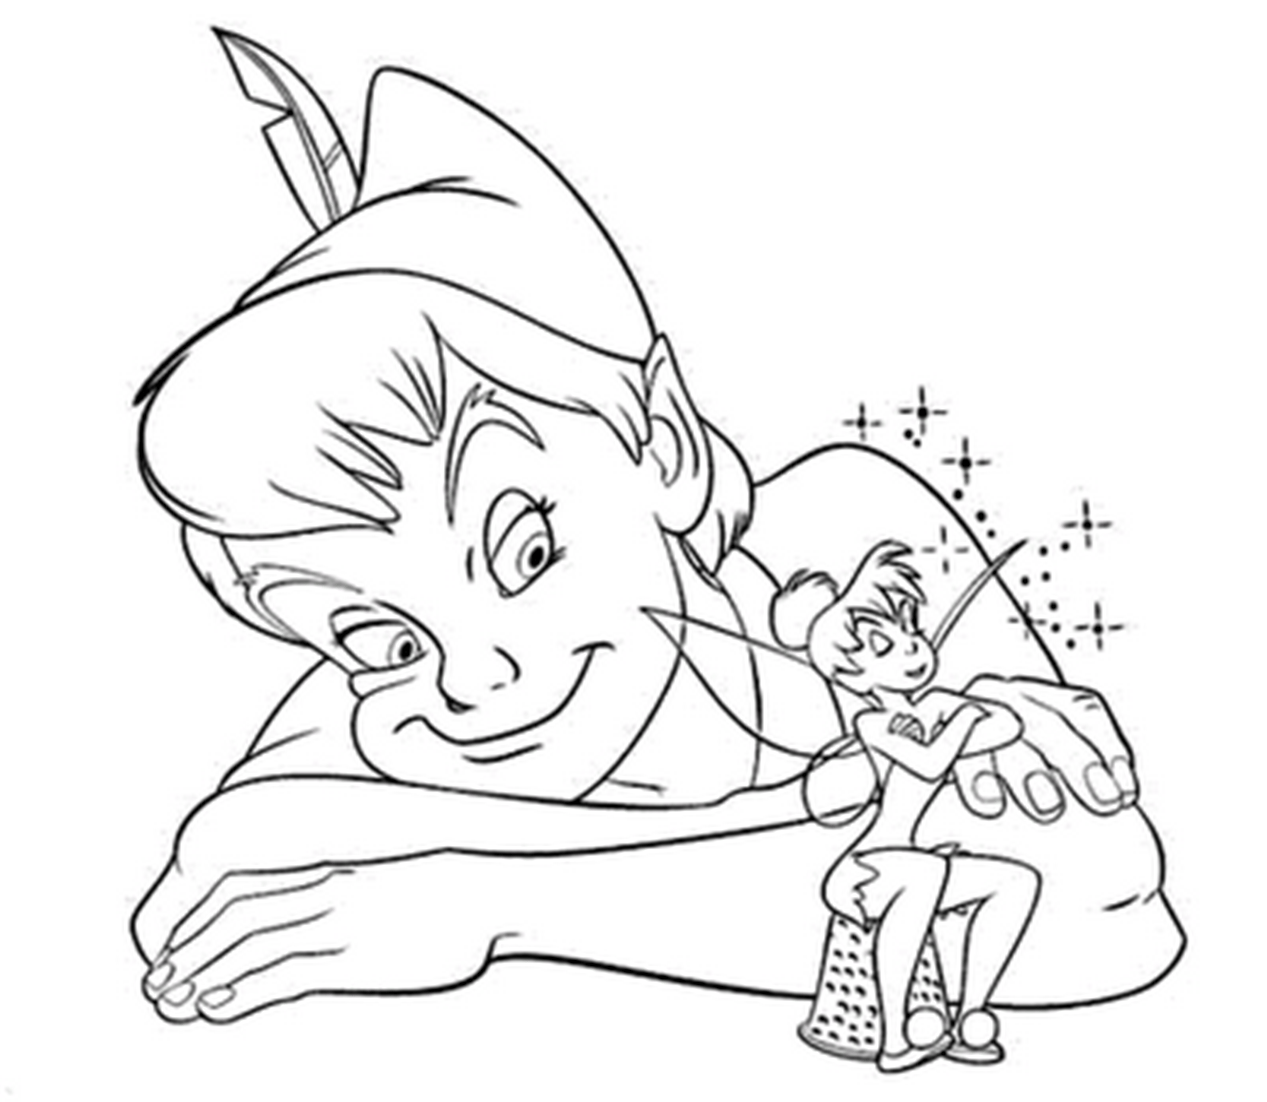 1267x1102 Incridible Peter Pan And Tinkerbell Coloring Pages From Peter Pan